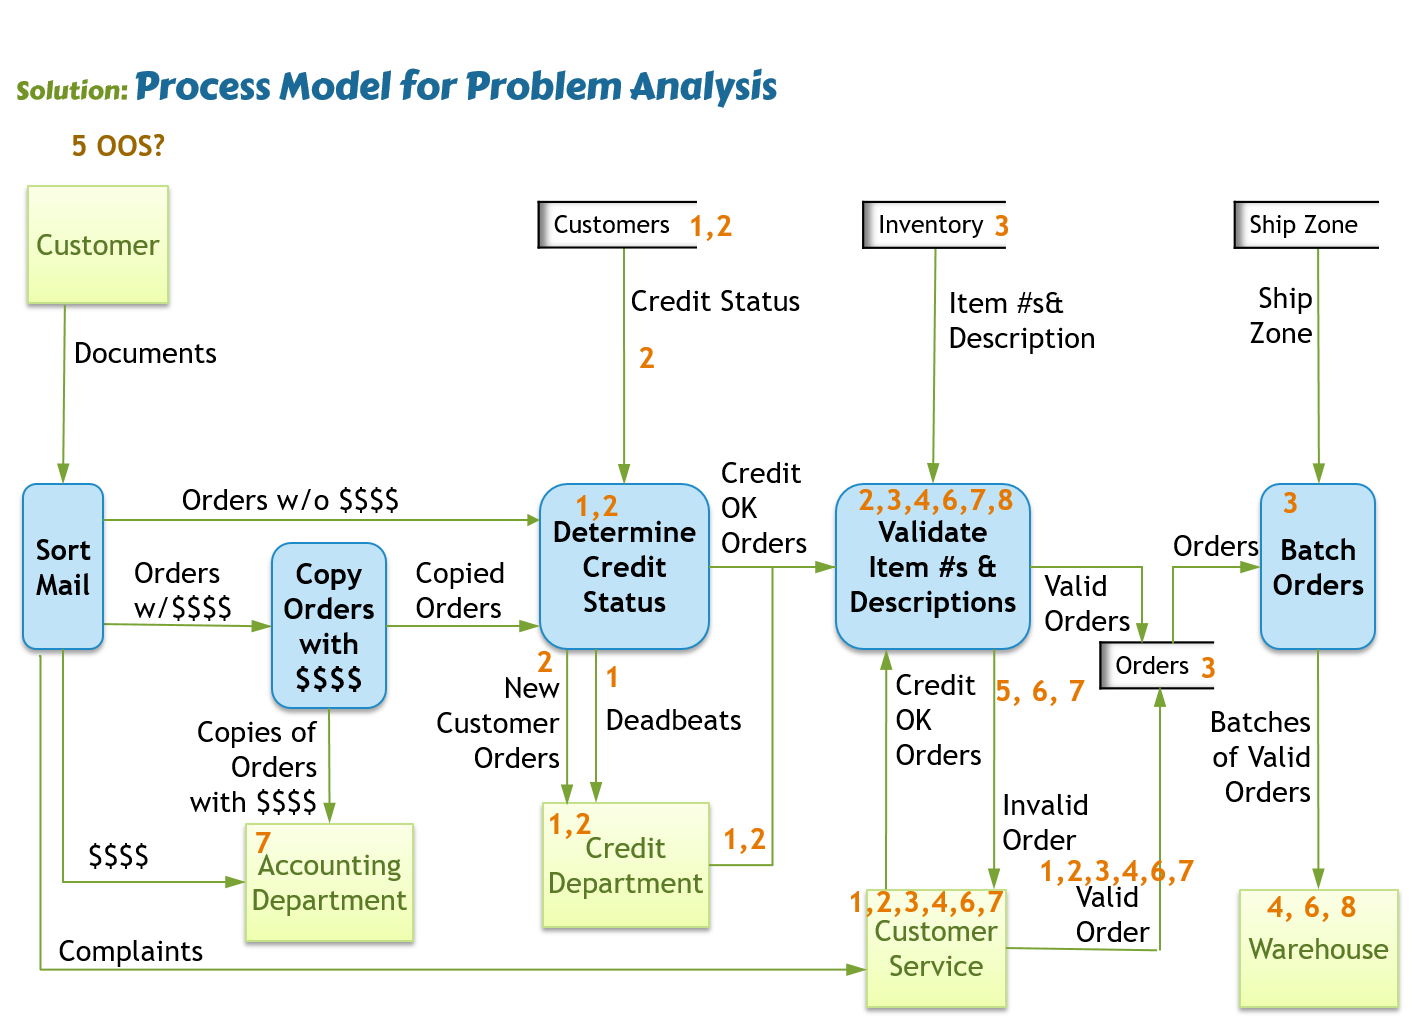 analysis of a business problem The problem, objective and strategy tree analysis is one participatory tool of mapping out main problems, along with their causes and effects, supporting project planners to identify clear and manageable goals and the strategy of how to achieve them there are three stages in this analytic process: (1) the identification of the.